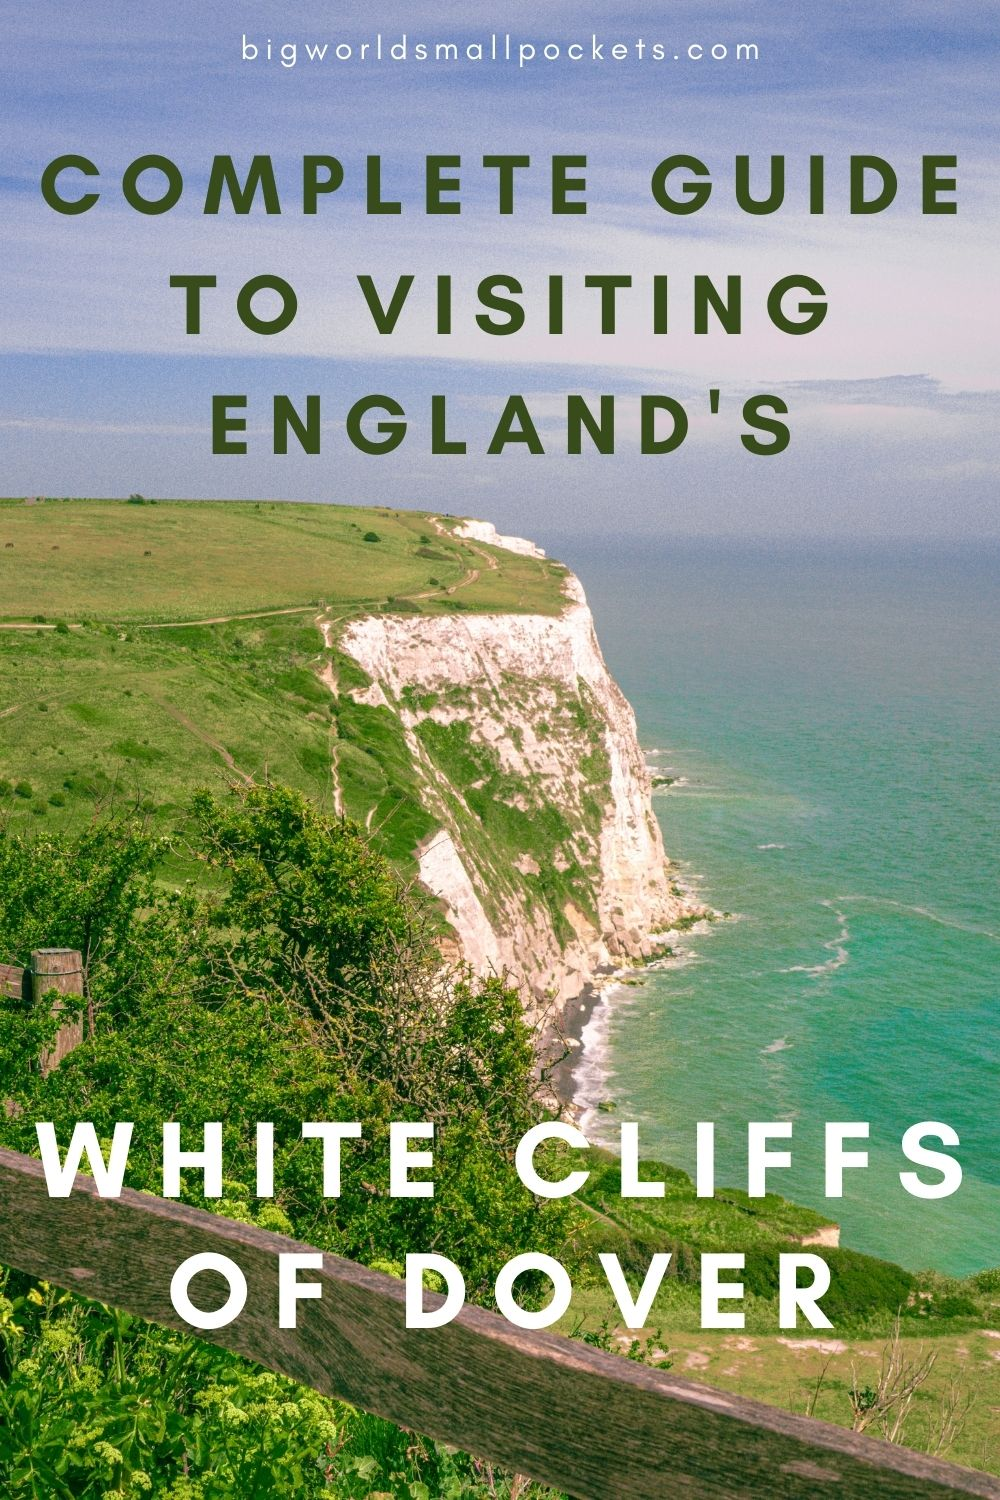 Complete Guide to Visitng England's White Cliffs of Dover